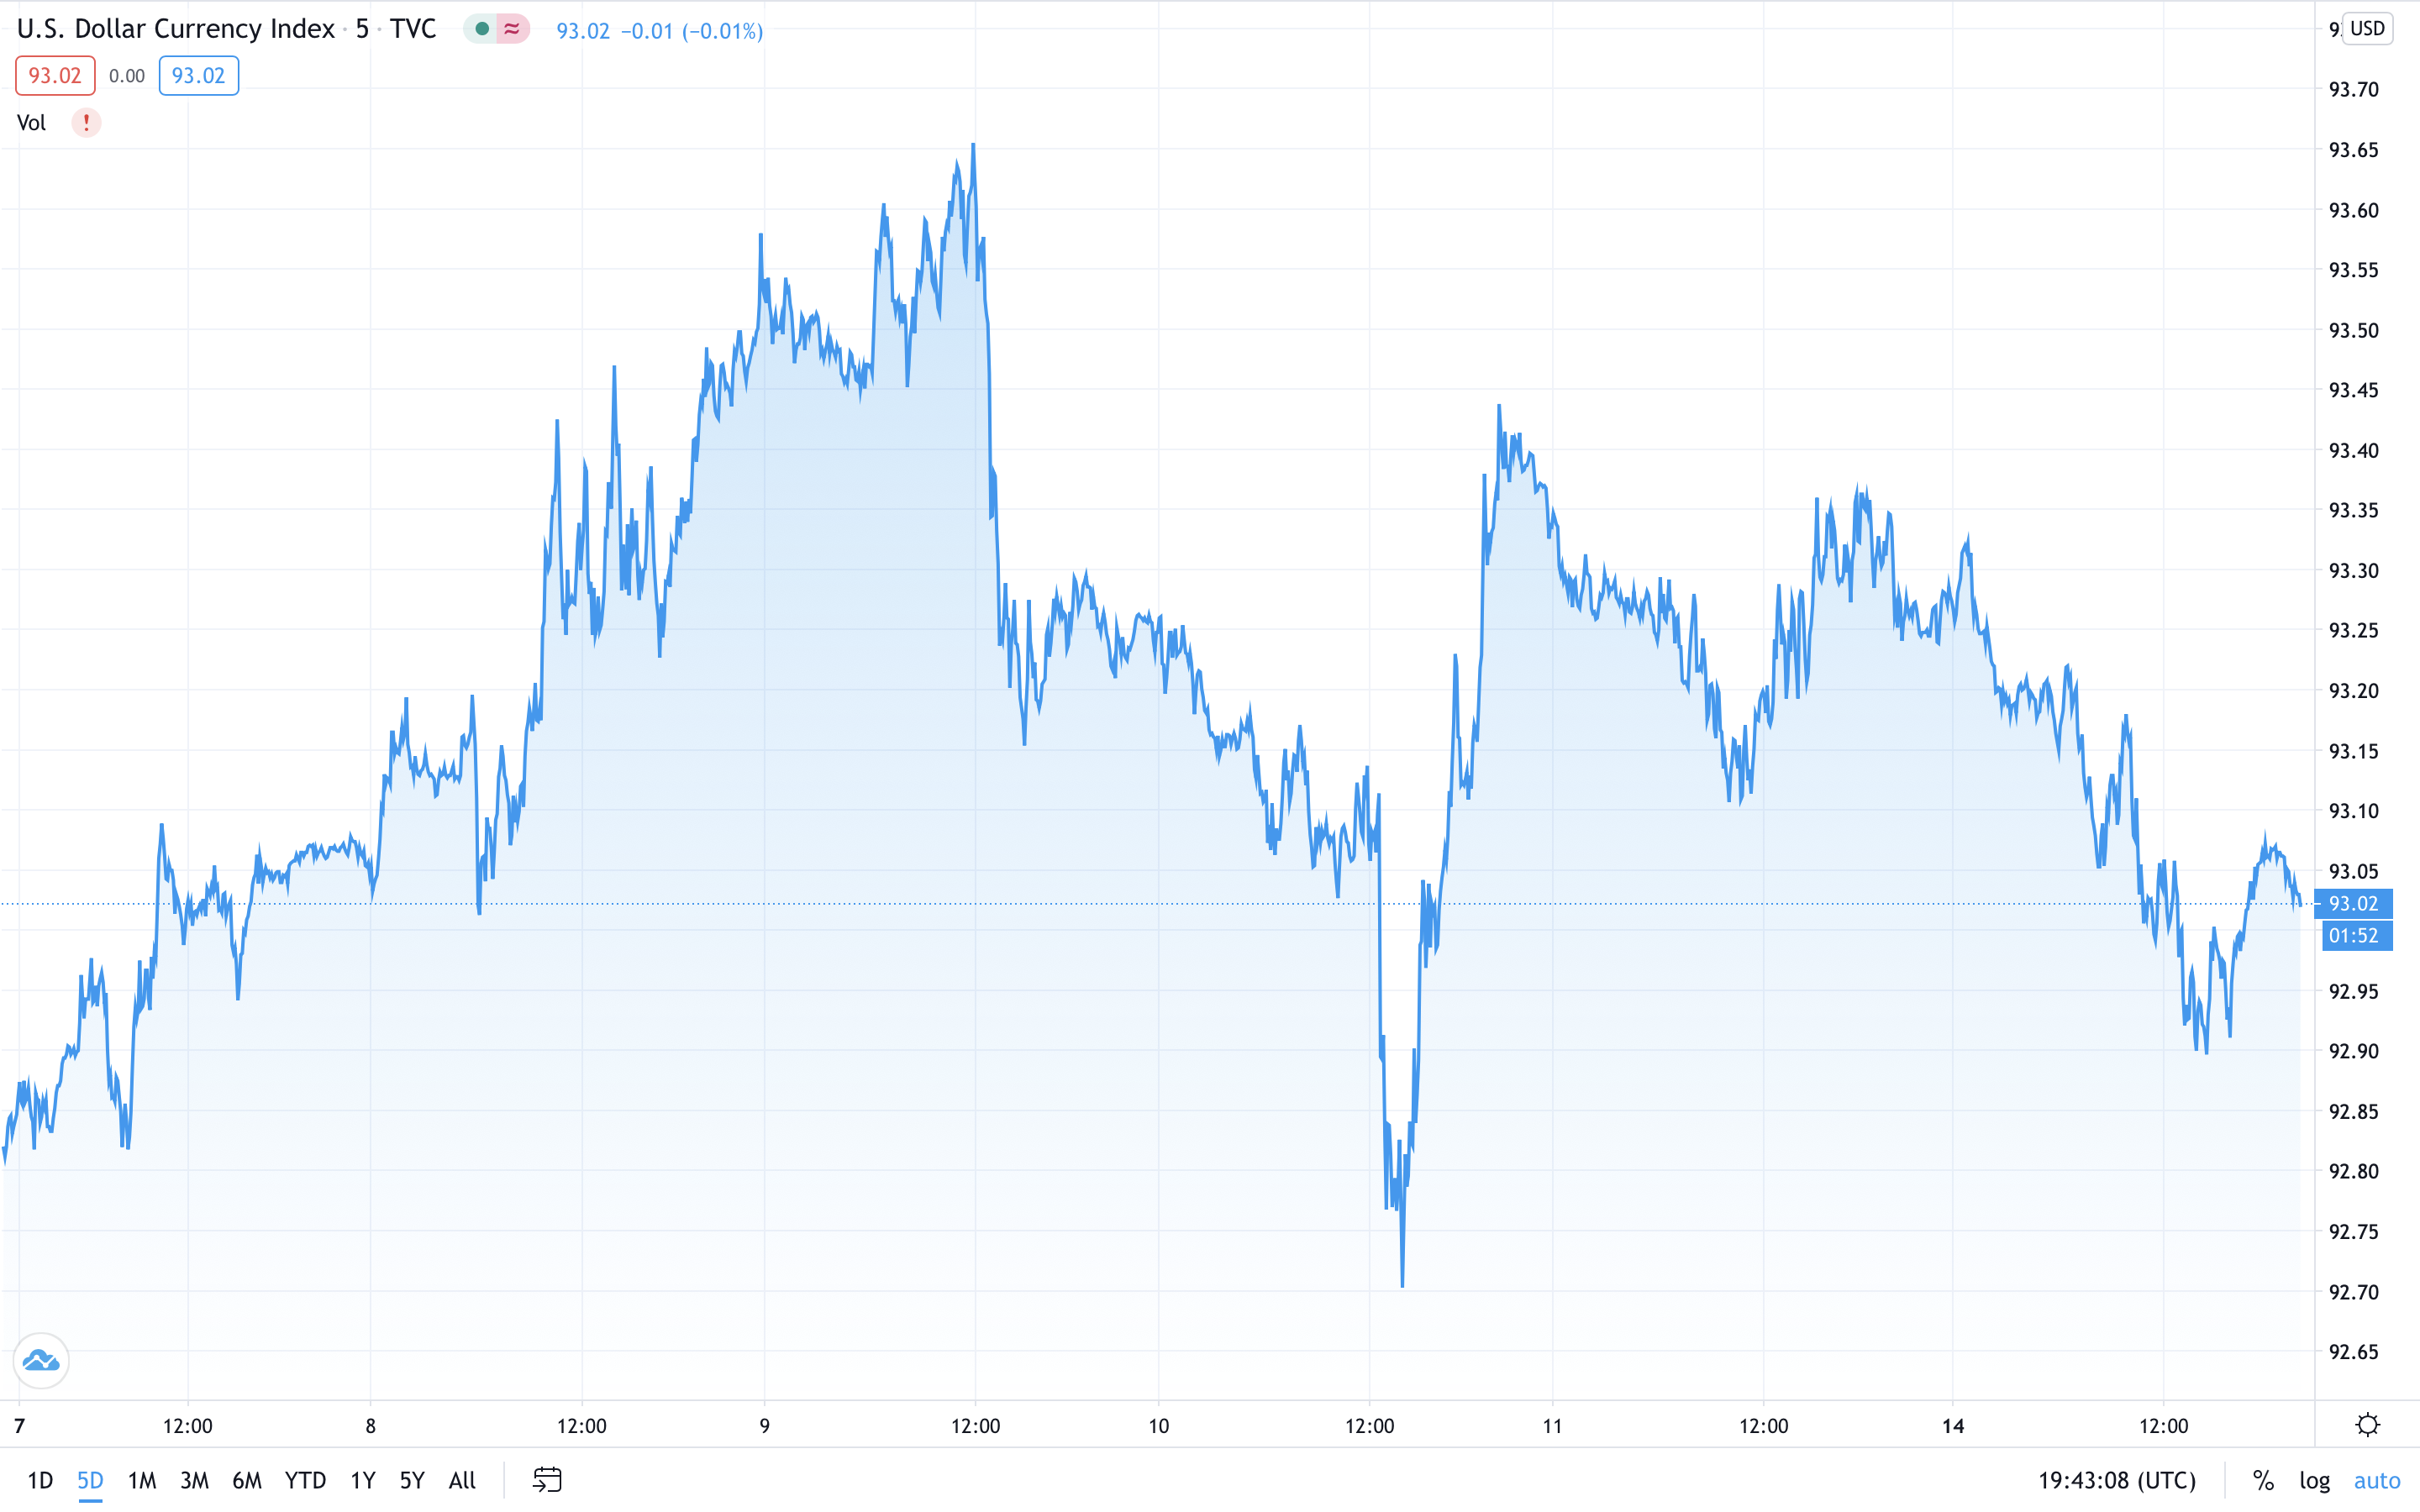 Macroeconomic Trends Boost Bitcoin and Gold, US Dollar Index Shows Bearish Double-Top